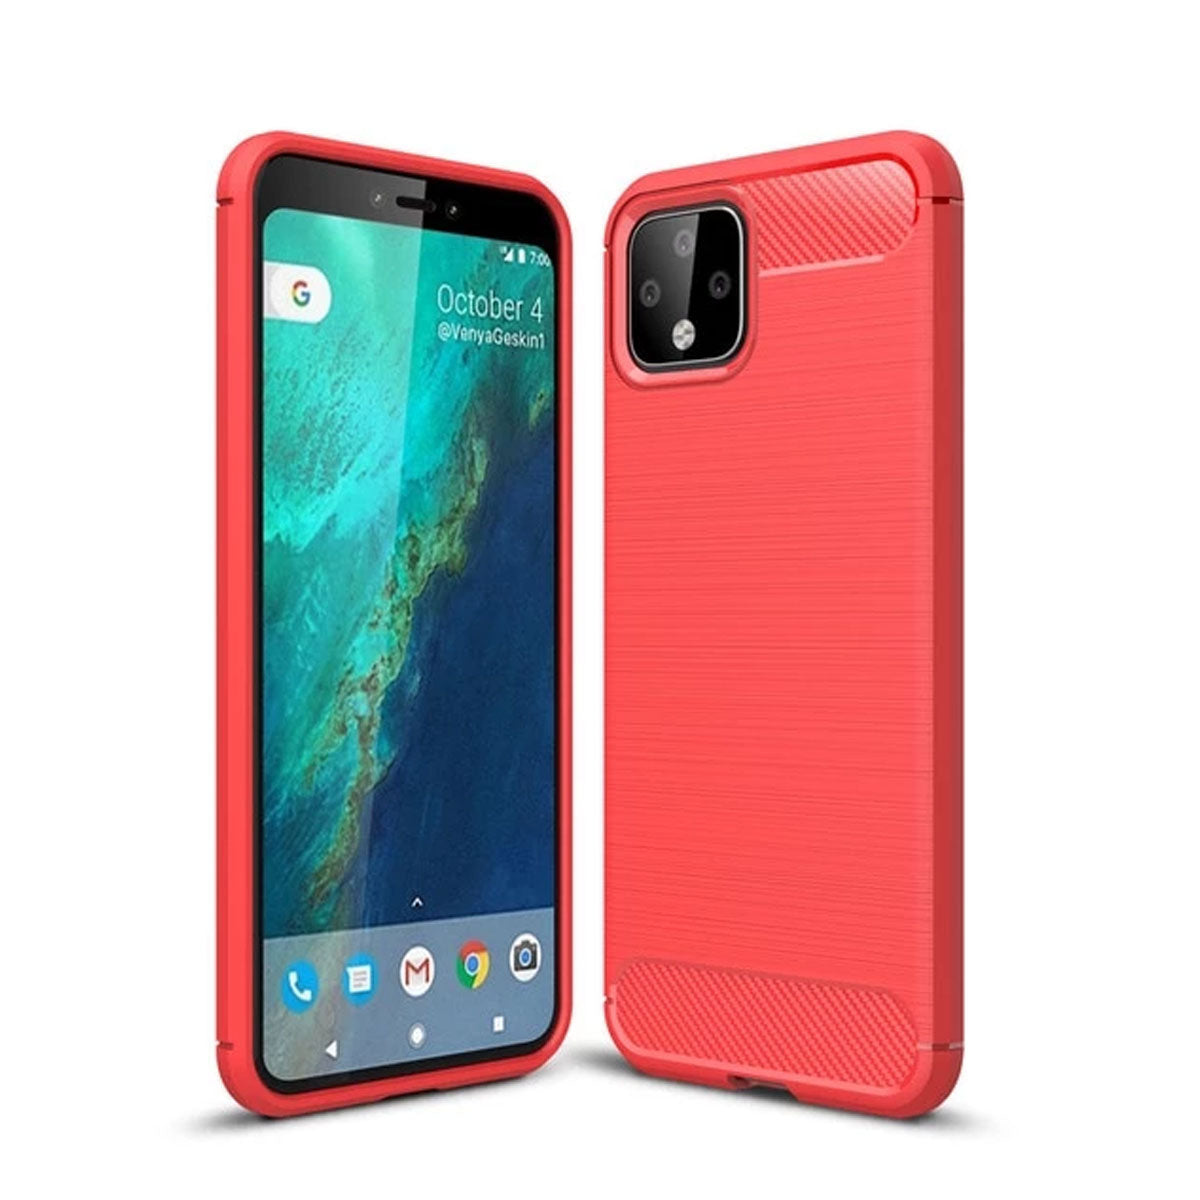 Micgita Cabon Fiber Silicone Case Brush TPU Cover For Google Pixel